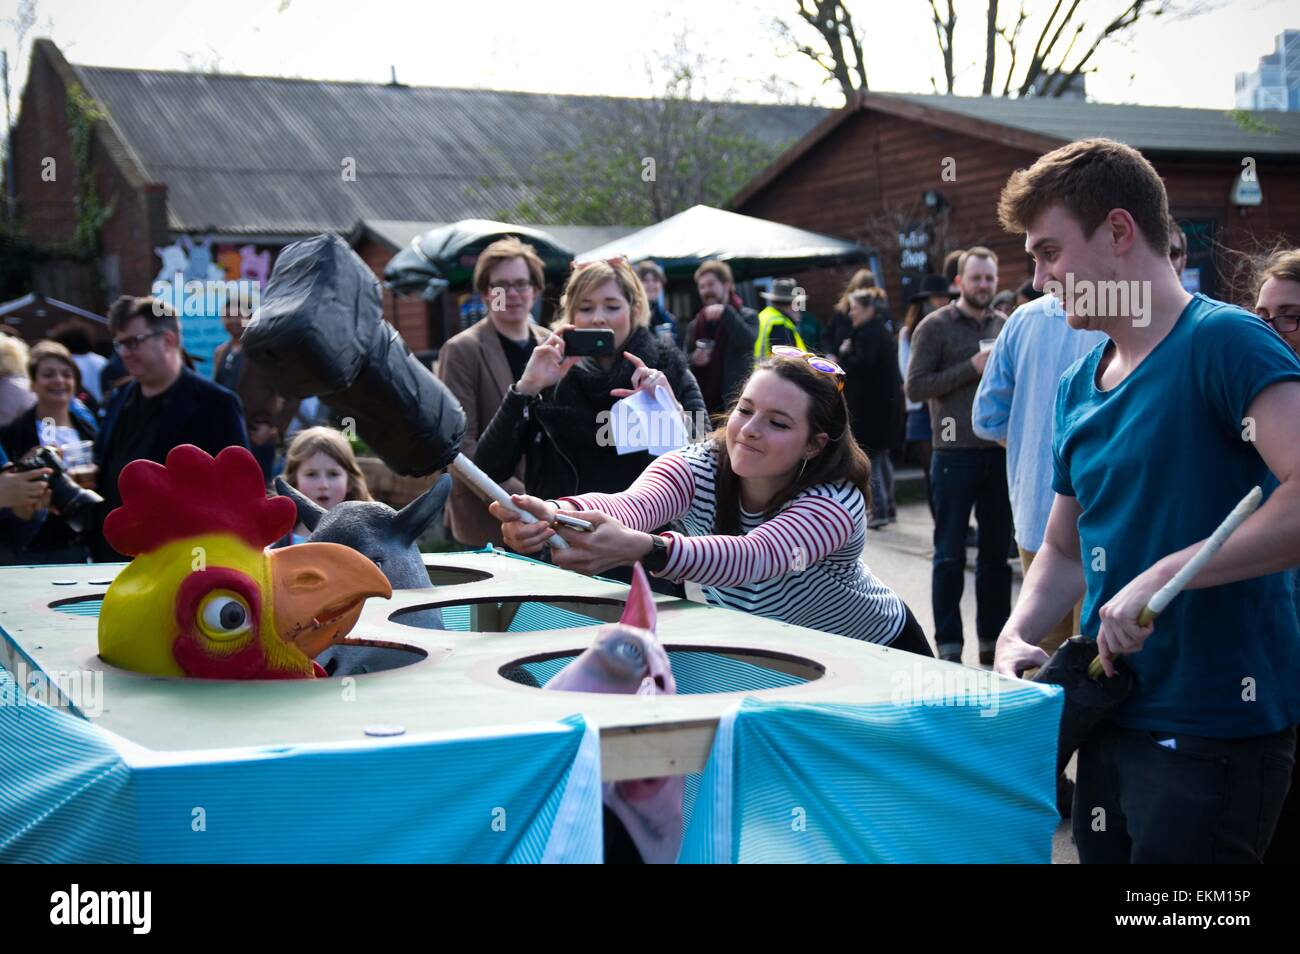 London, United Kingdom. 11th Apr, 2015. Spectators enjoy some games hosted by the venue before the goat race. Annual - Stock Image